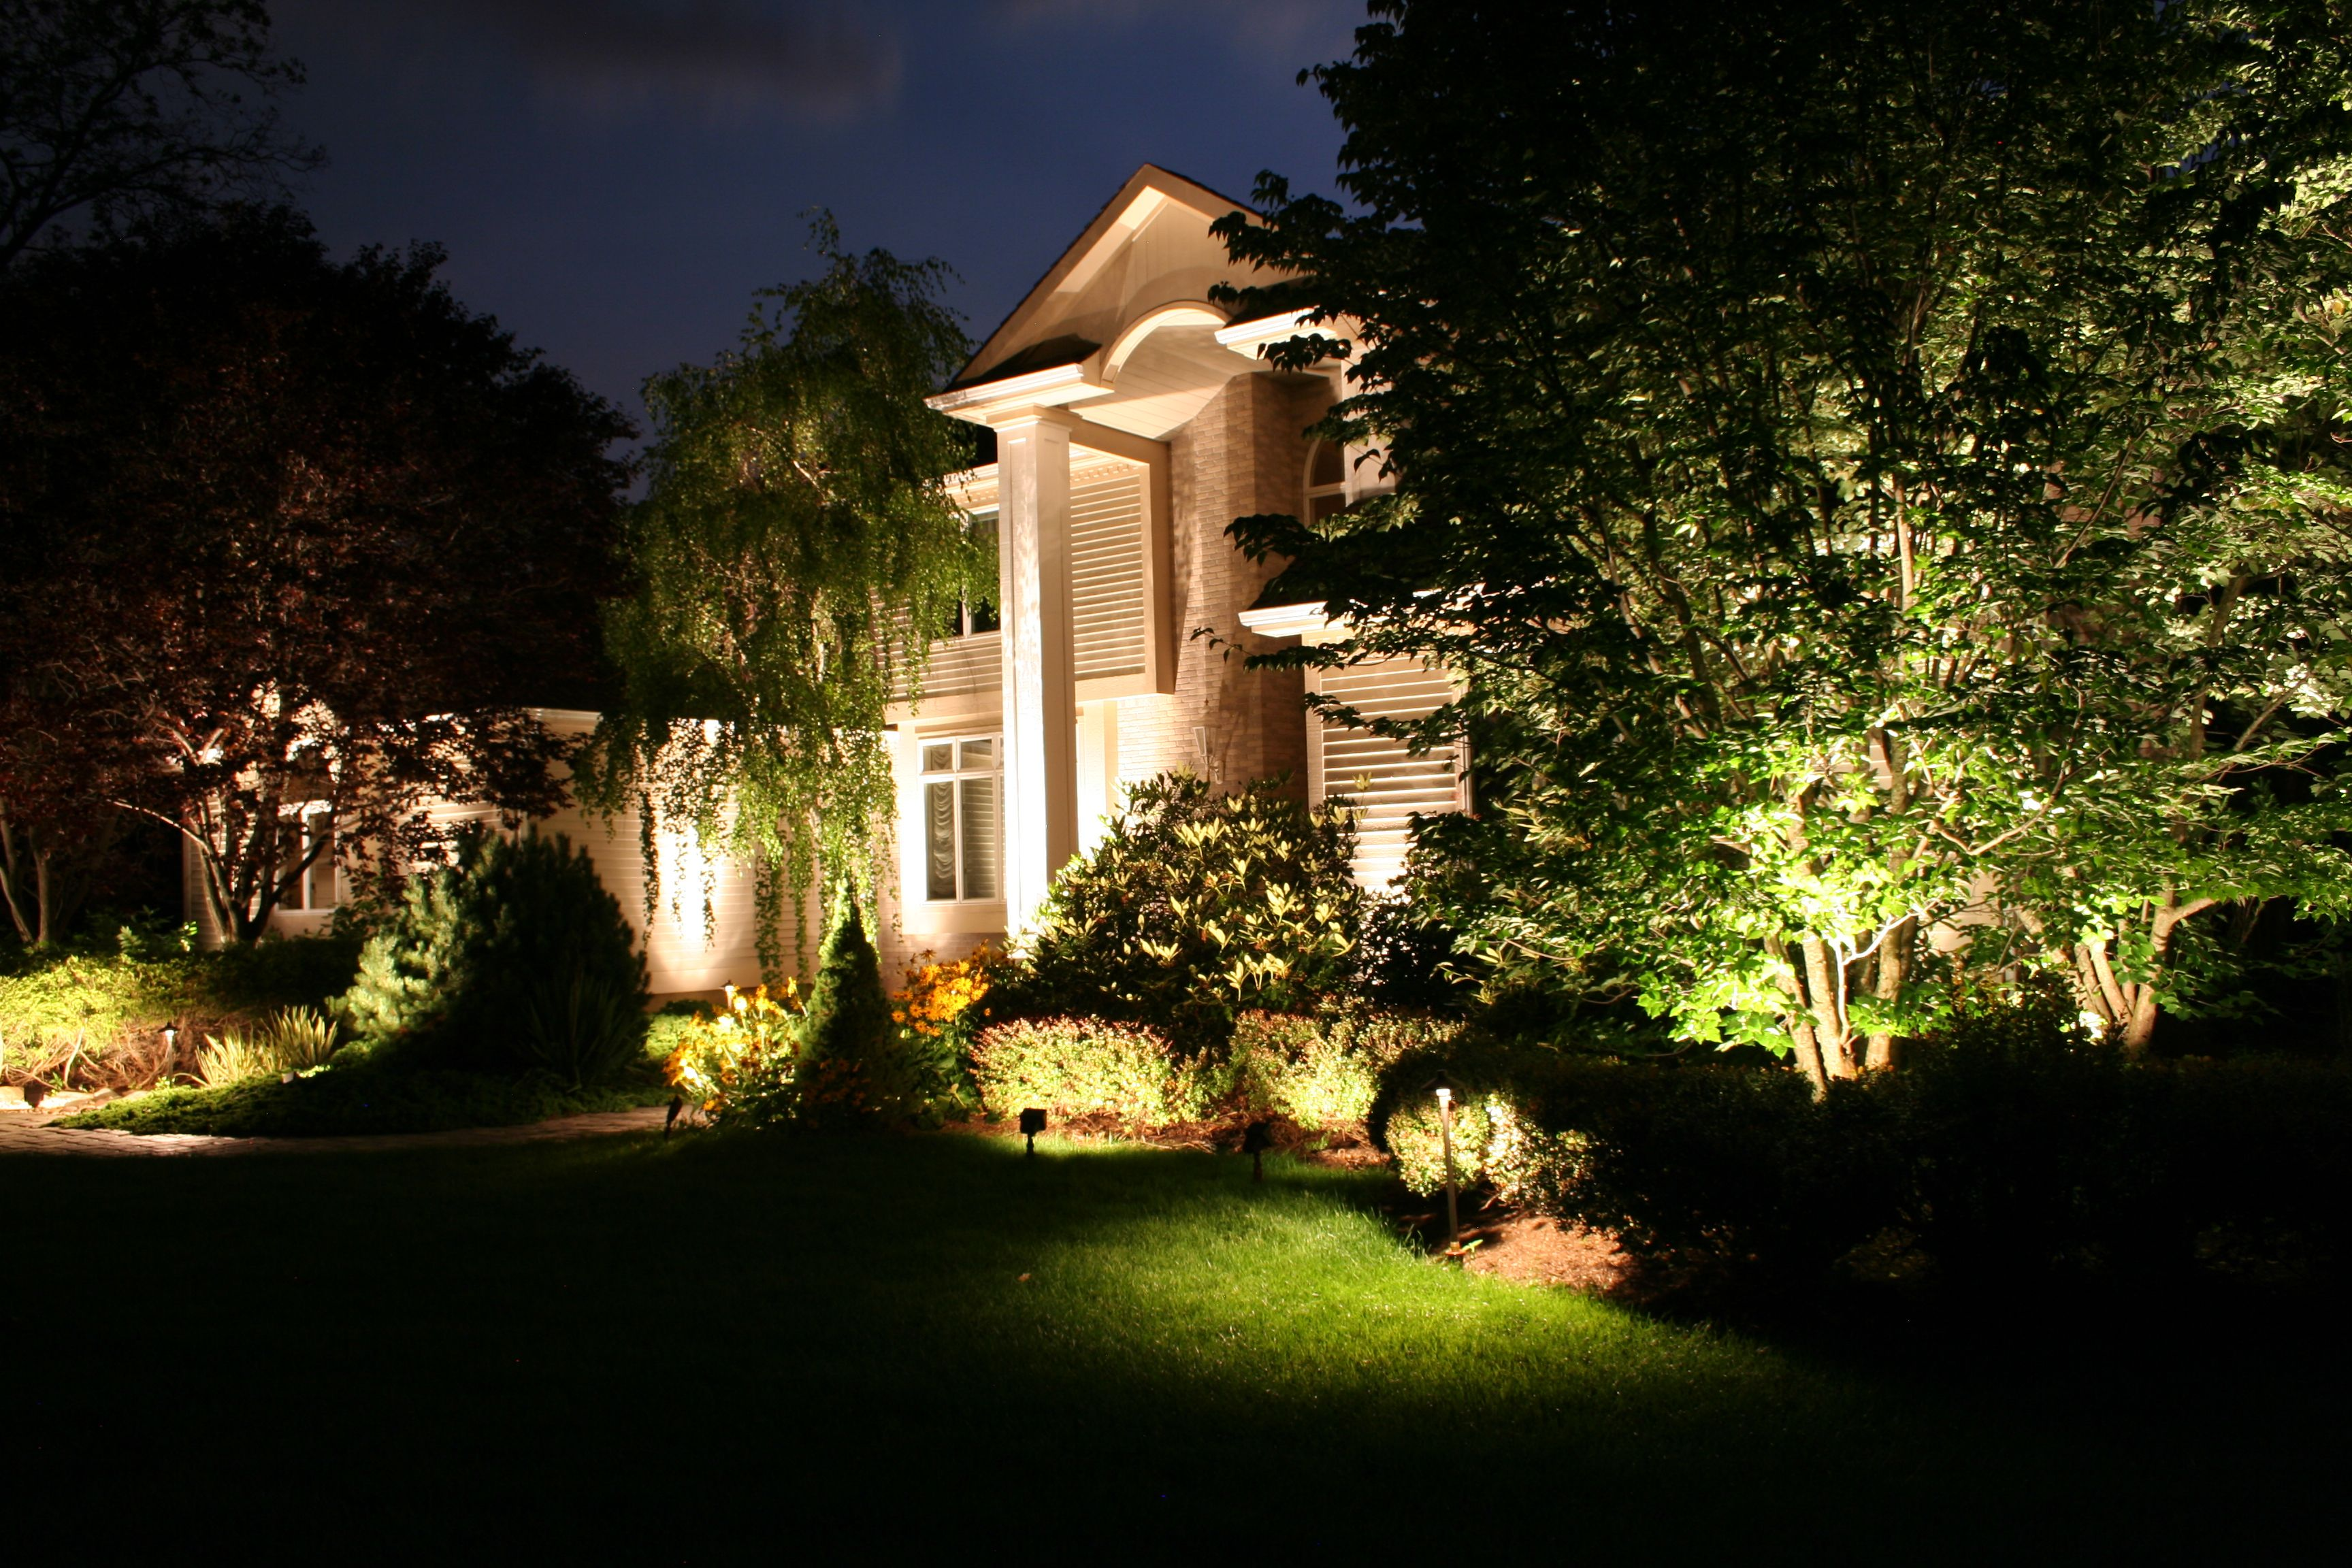 Michael gotowala lighting designer at preferred properties landscape lighting manufacturer of solid bronze rugged premium quality low voltage landscape lighting fixtures transformers wire bulbs and other outdoor aloadofball Gallery